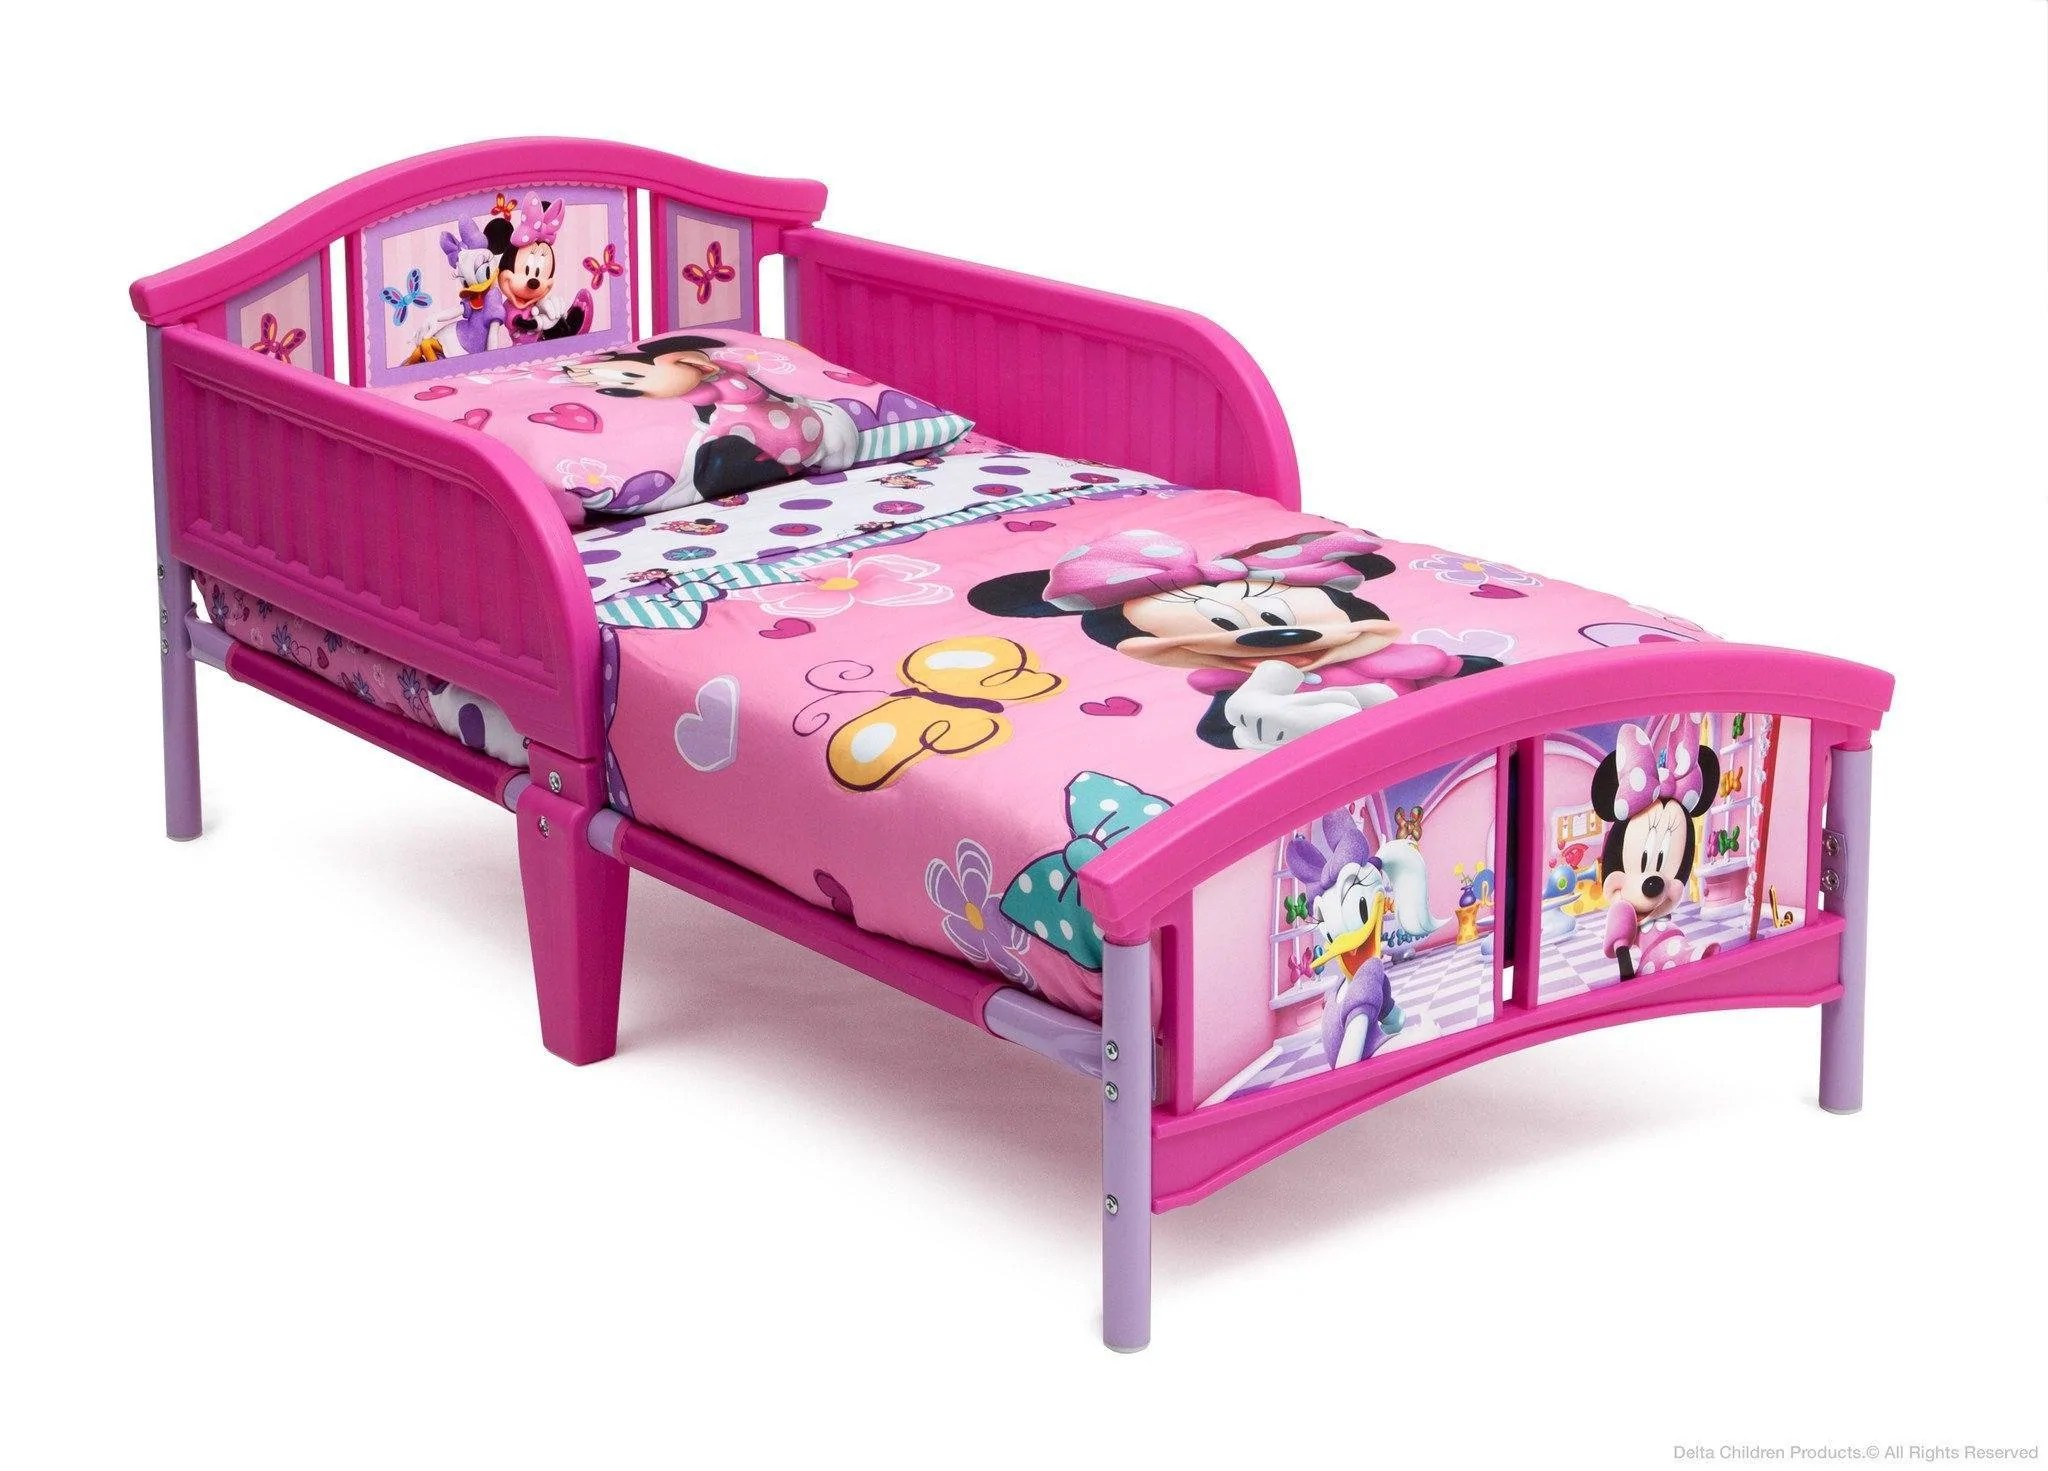 Tremendous Delta Children Disney Minnie Mouse Plastic Toddler Bed Right Side View Minnie Mouse Plastic Toddler Bed Delta Children Toddler Bed Sheets Kmart Toddler Bed Sheets 160 X 70 baby Toddler Bed Sheets